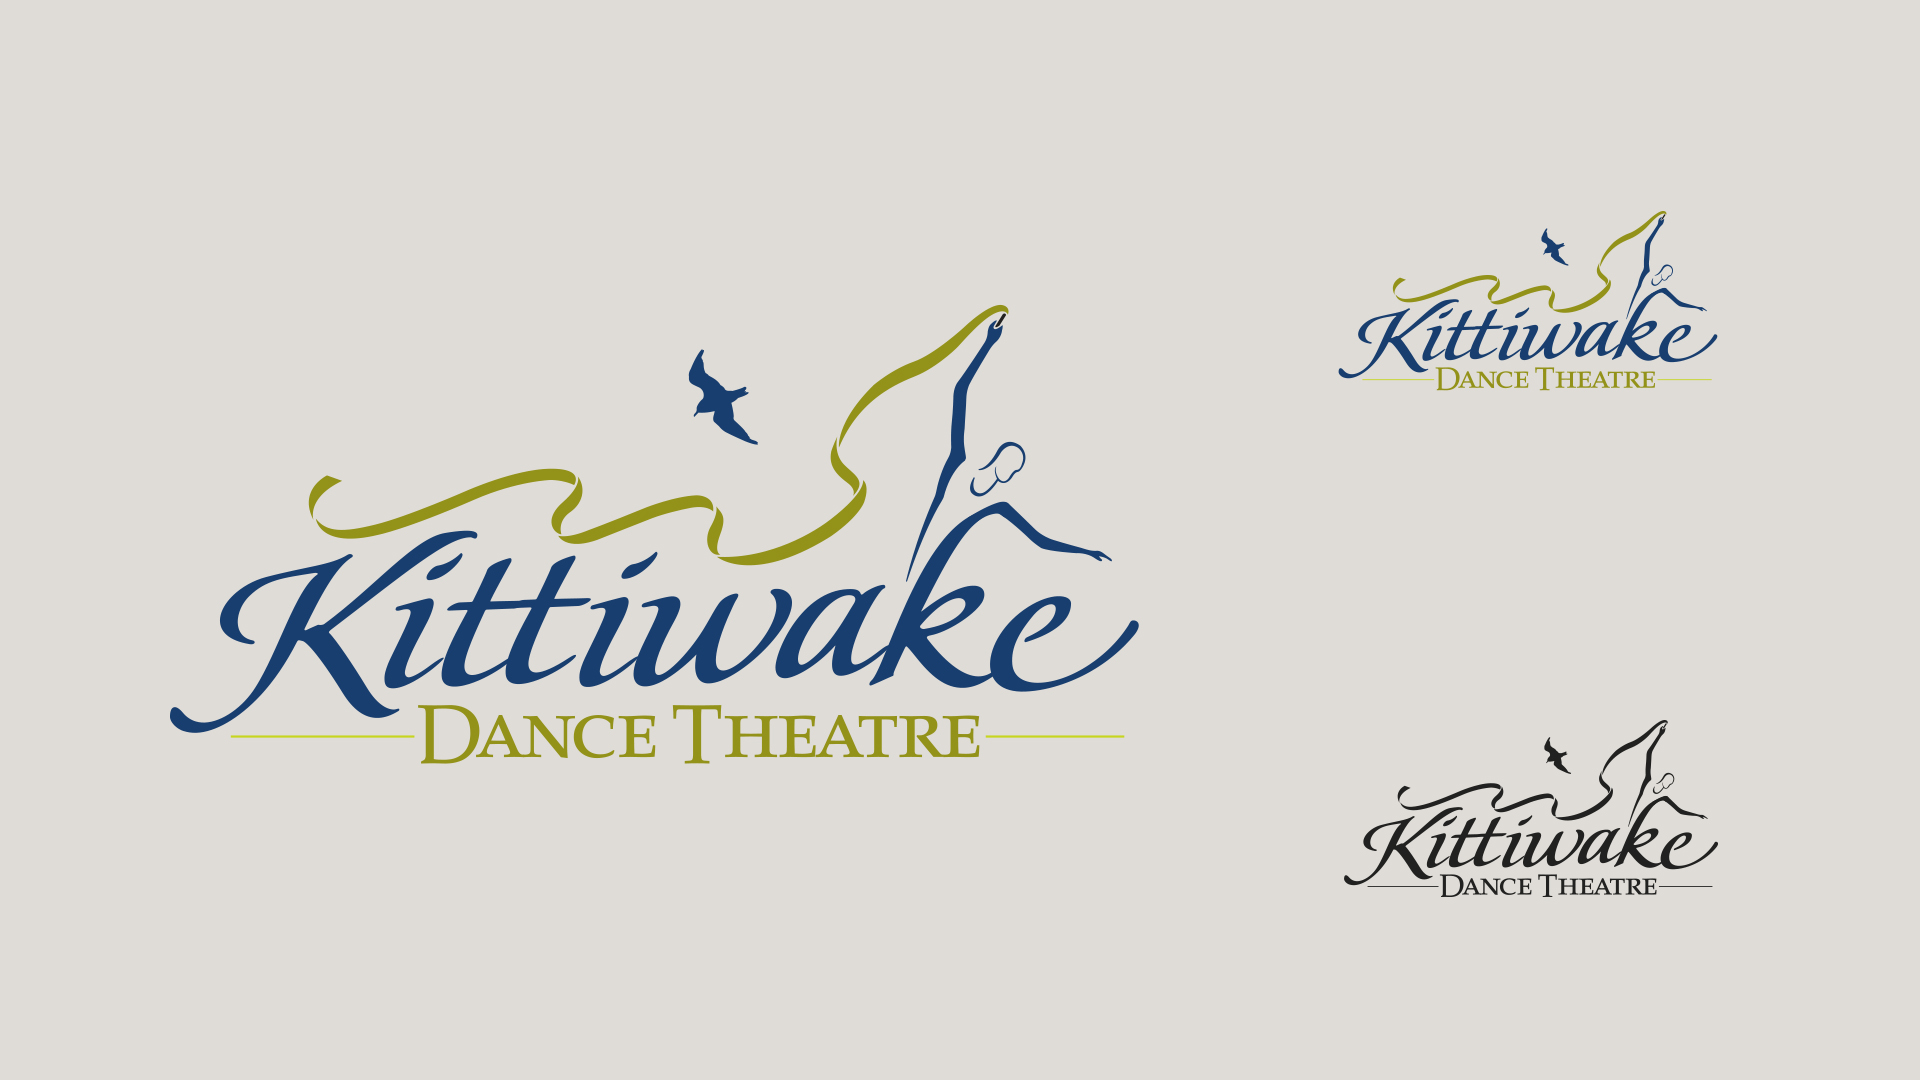 Kittiwake Dance Theatre Logo